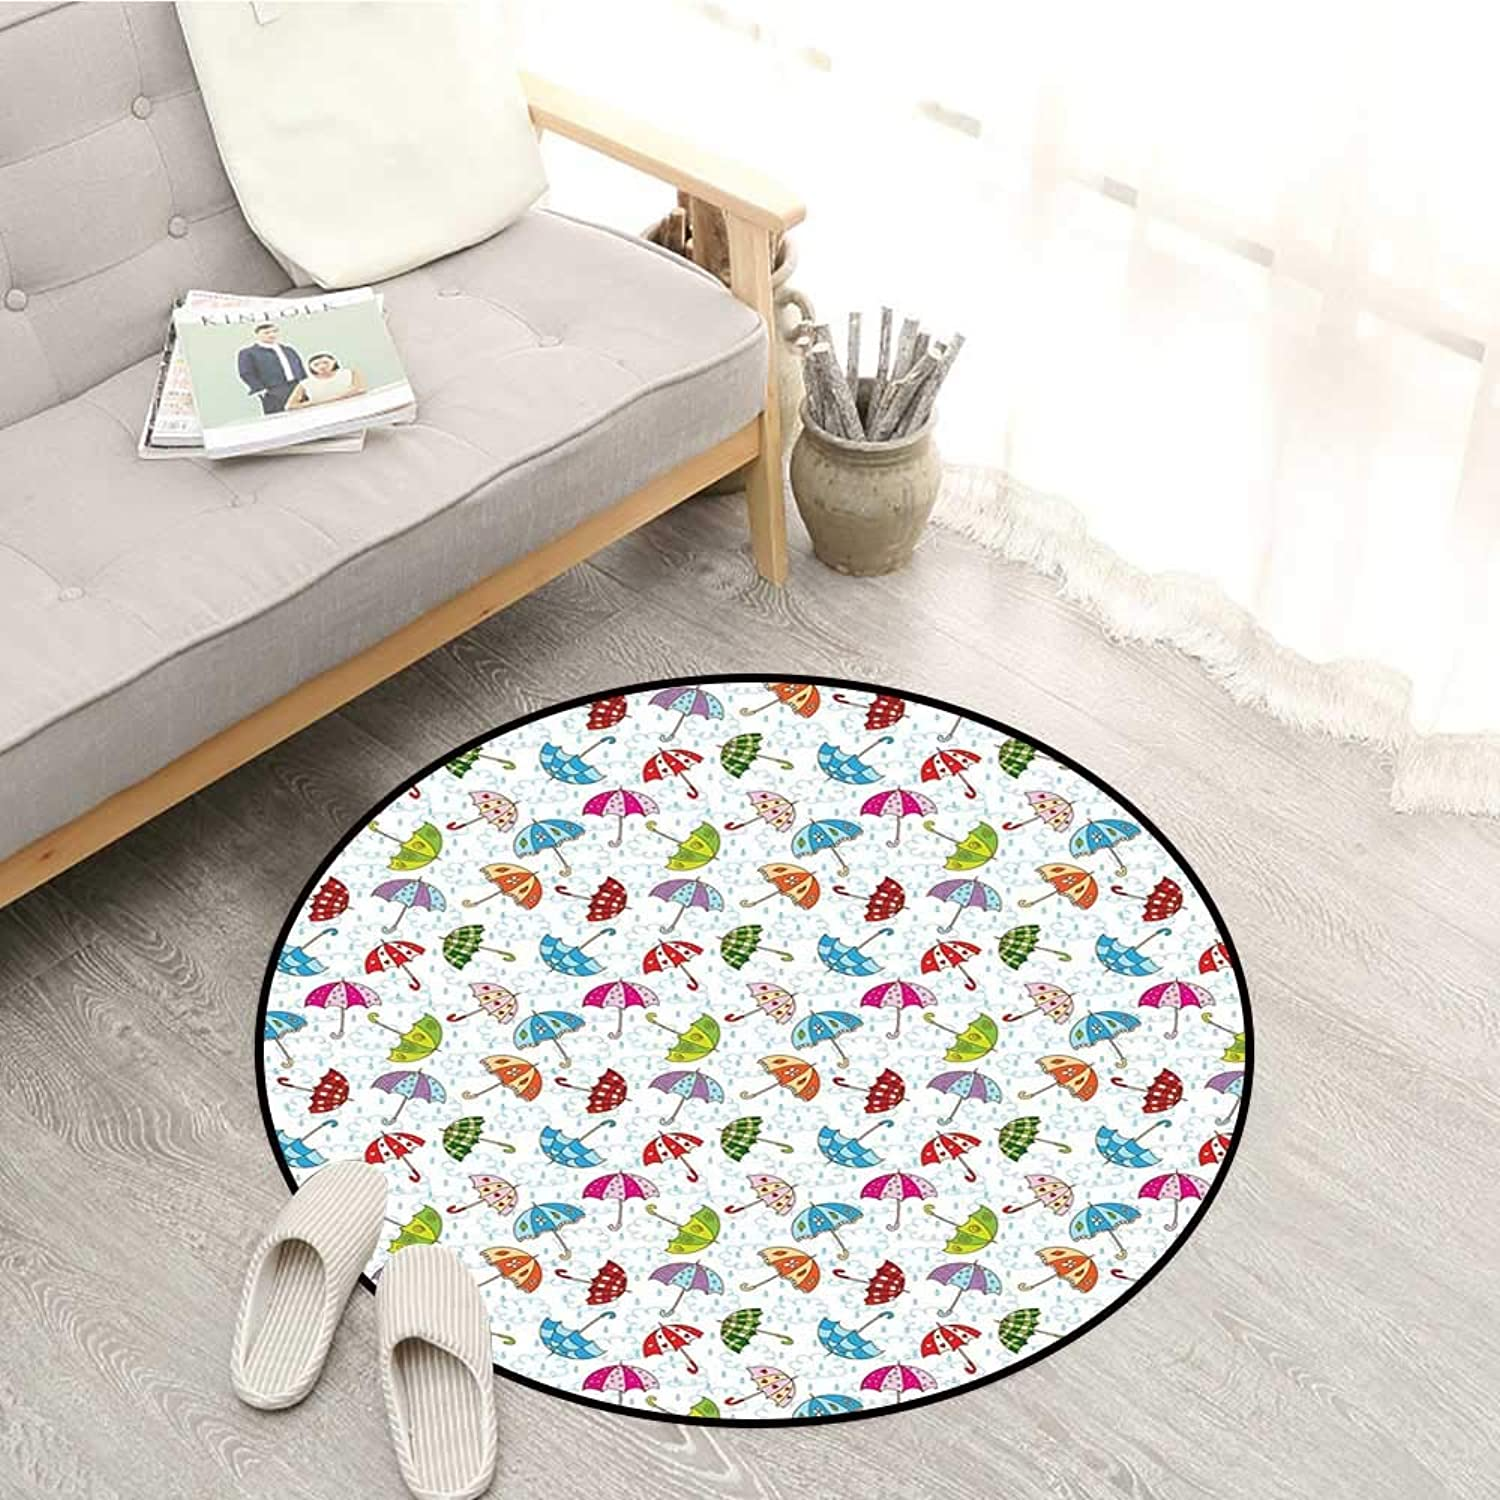 Umbrella Non-Slip Rugs Cartoon Style Different Umbrellas Scattered Around in The Spring Rain Wet Weather Sofa Coffee Table Mat 4'11  Multicolor